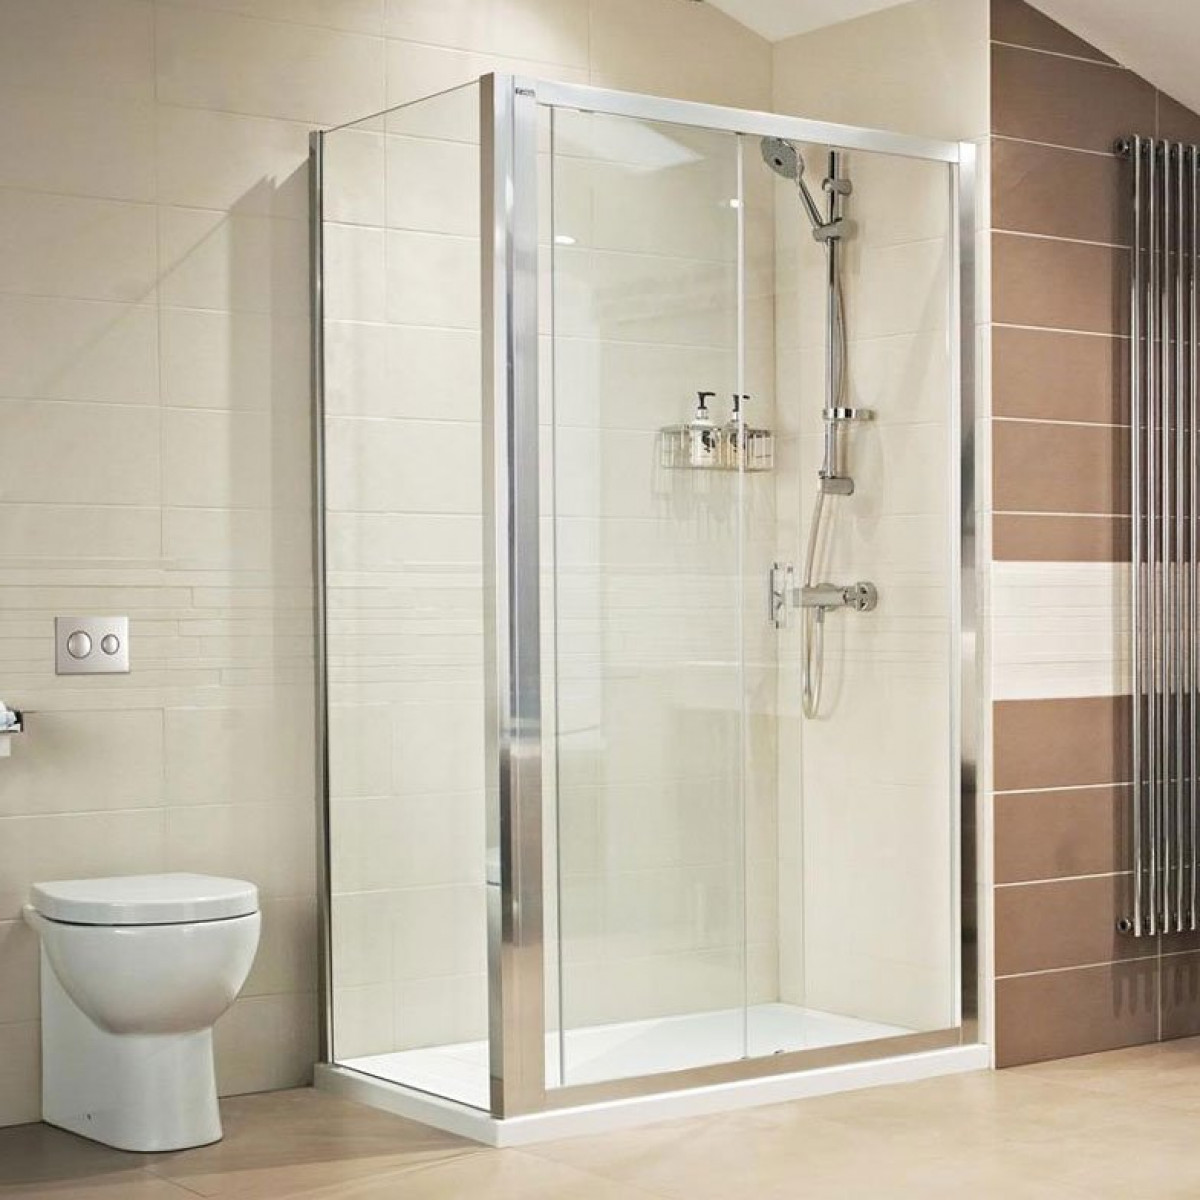 Roman lumin8 1200mm sliding shower door for 1200mm shower door sliding